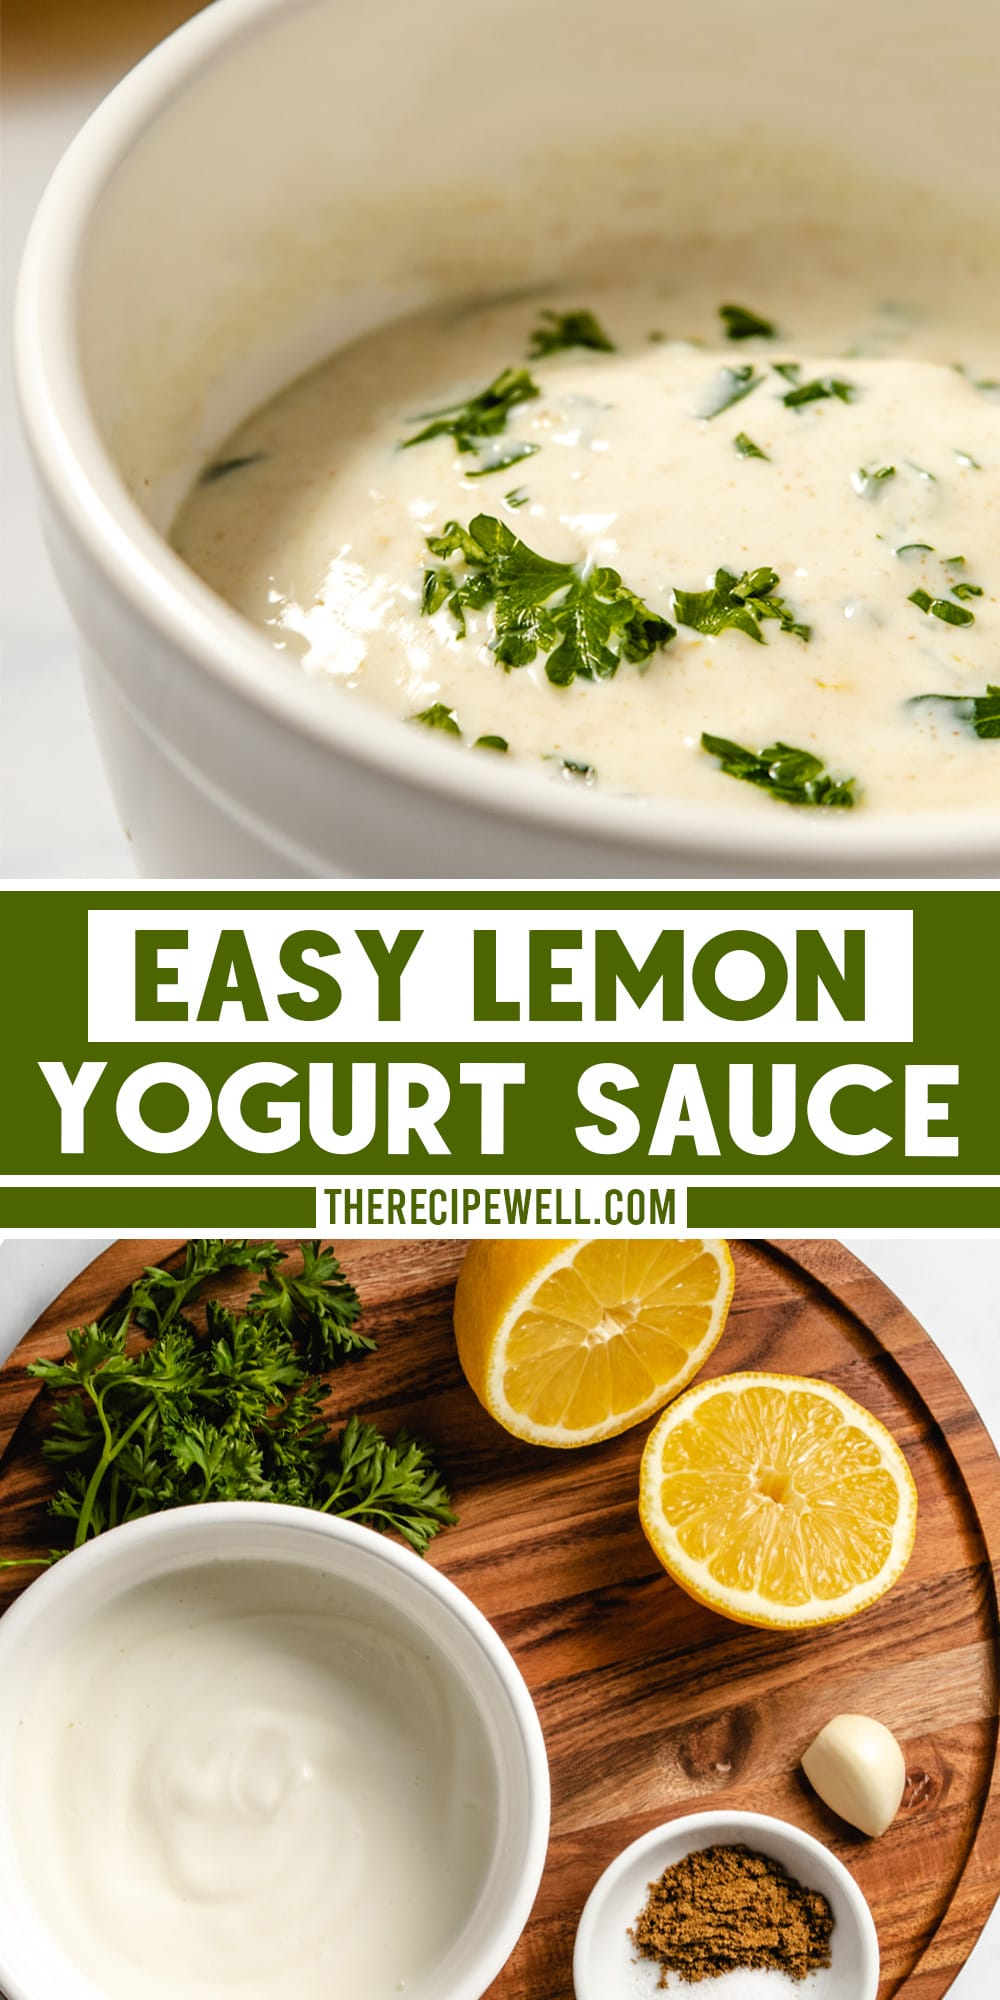 This healthy, flavourful lemon yogurt sauce is a great accompaniment to spicy curries or on top of grilled chicken or fish. You need just a handful of ingredients and 5 minutes of prep! via @therecipewell